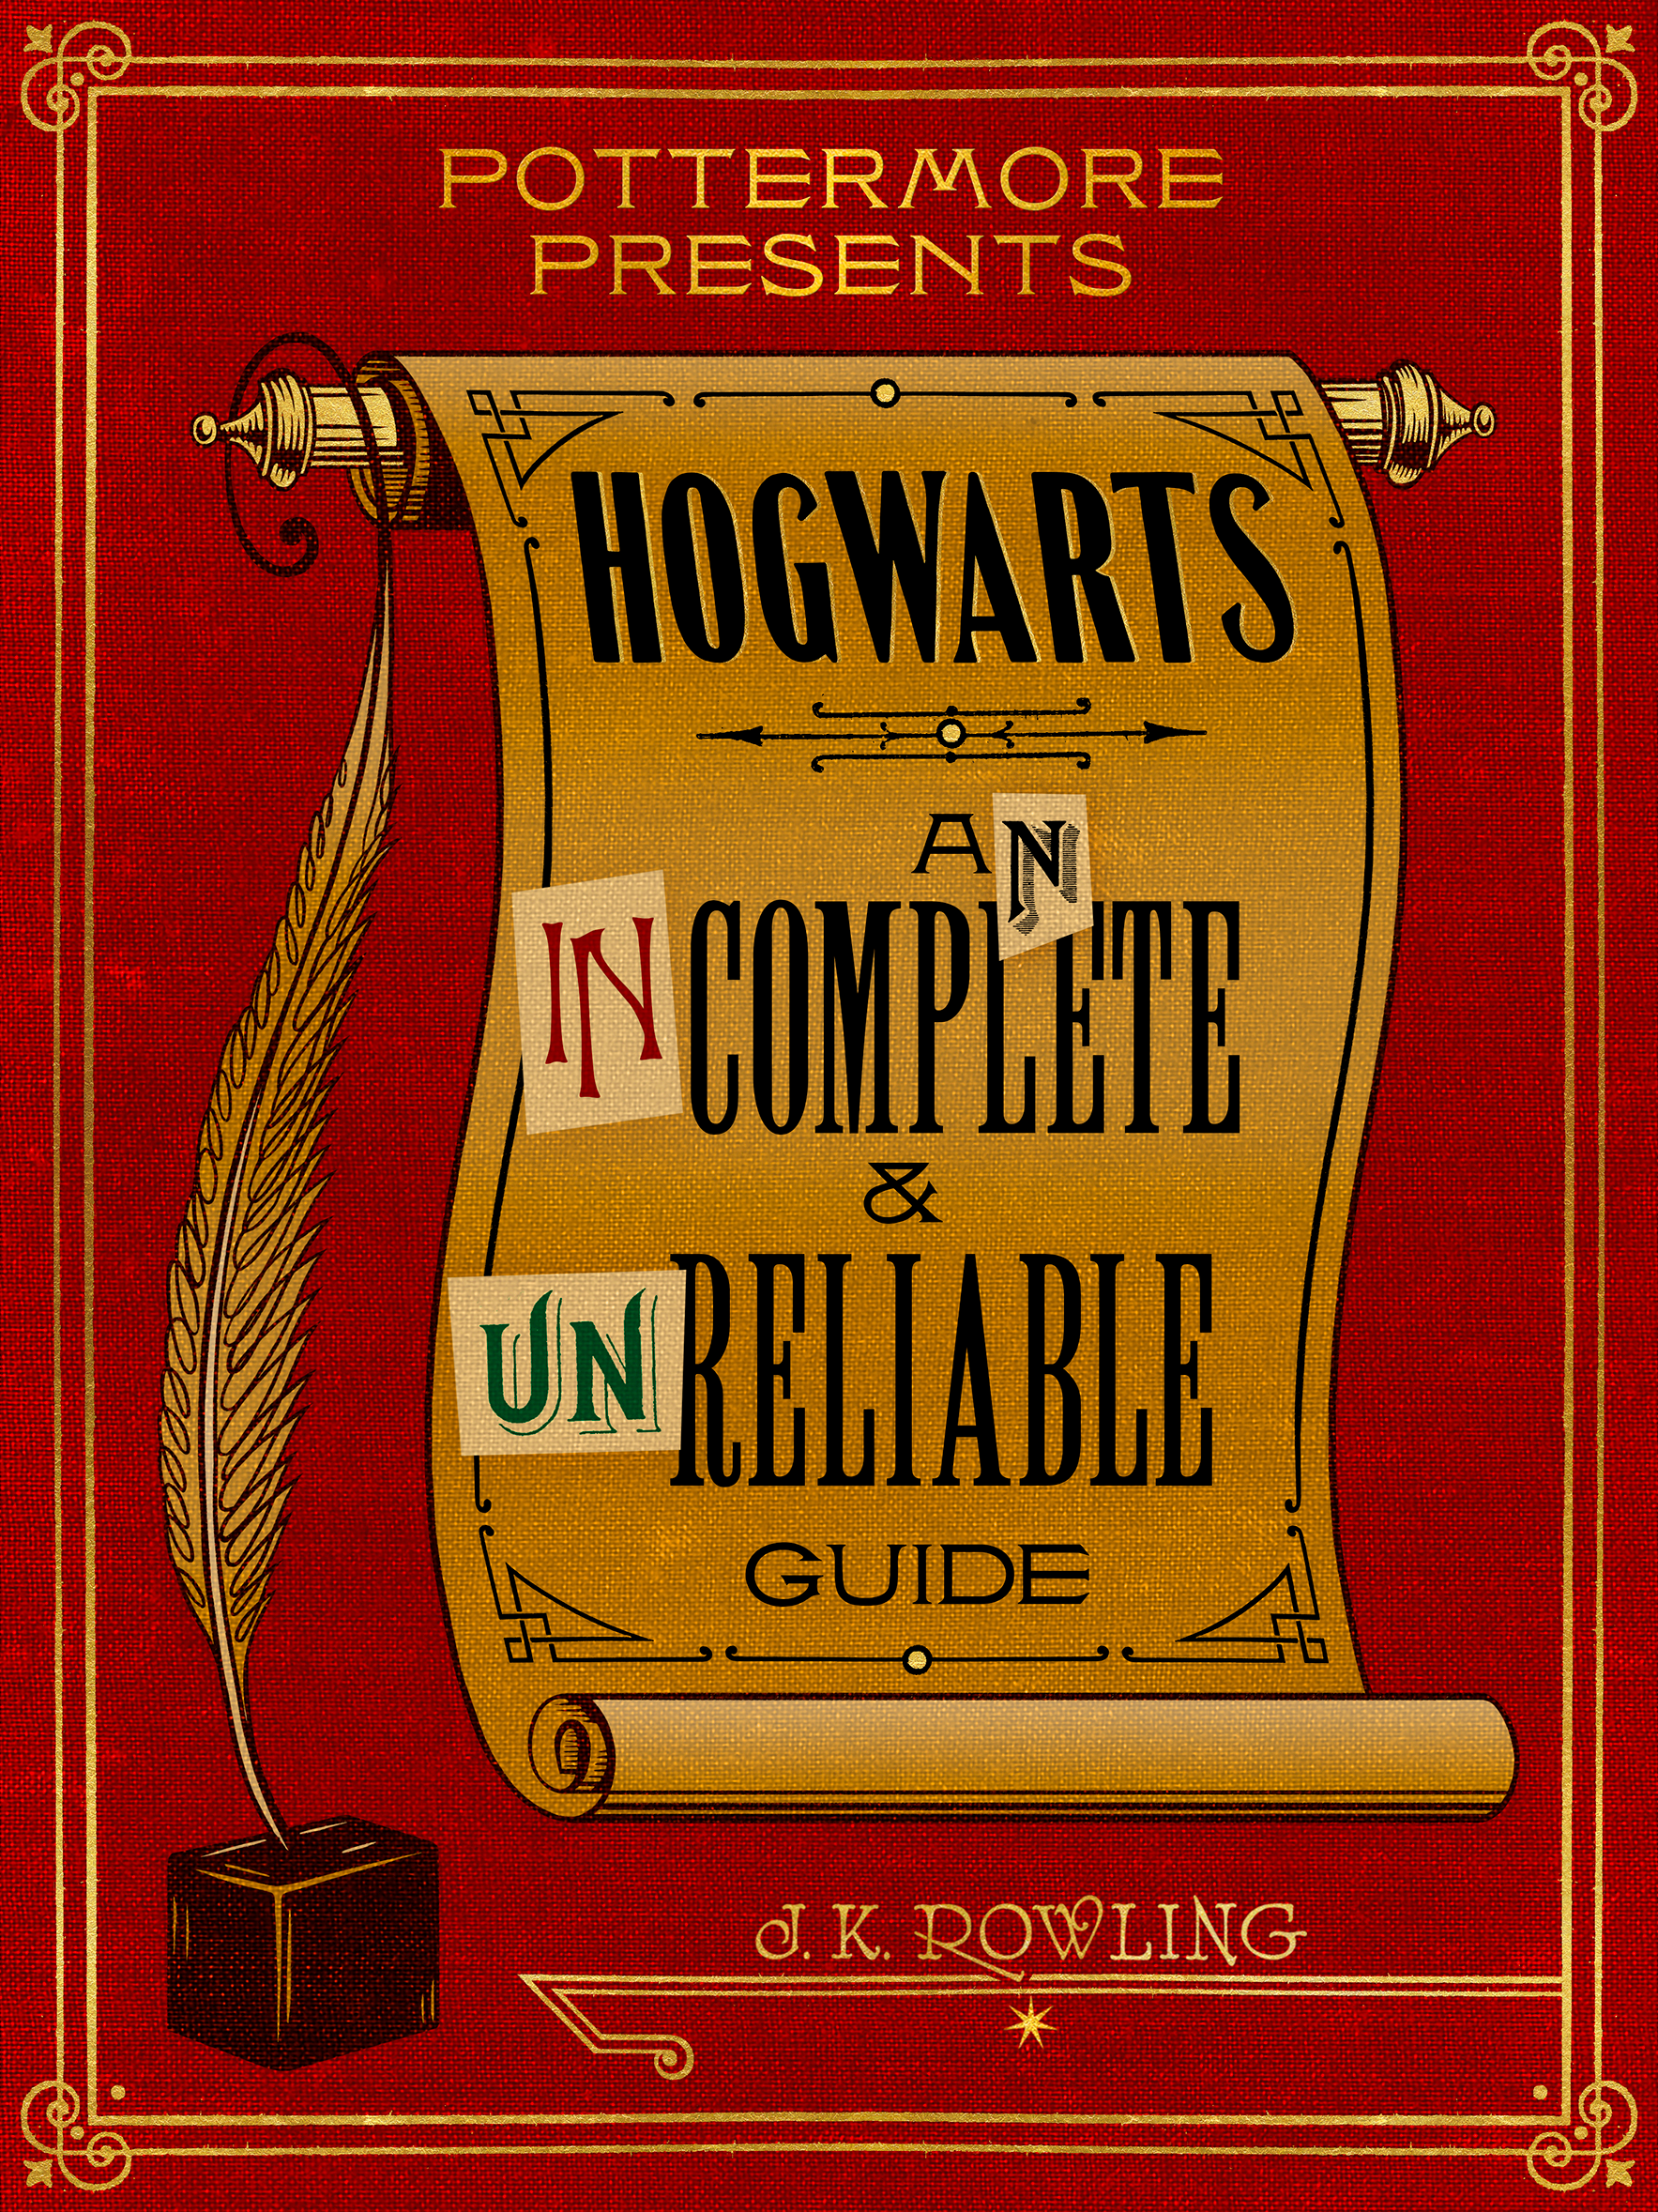 Harry Potter Ebook For Mobile